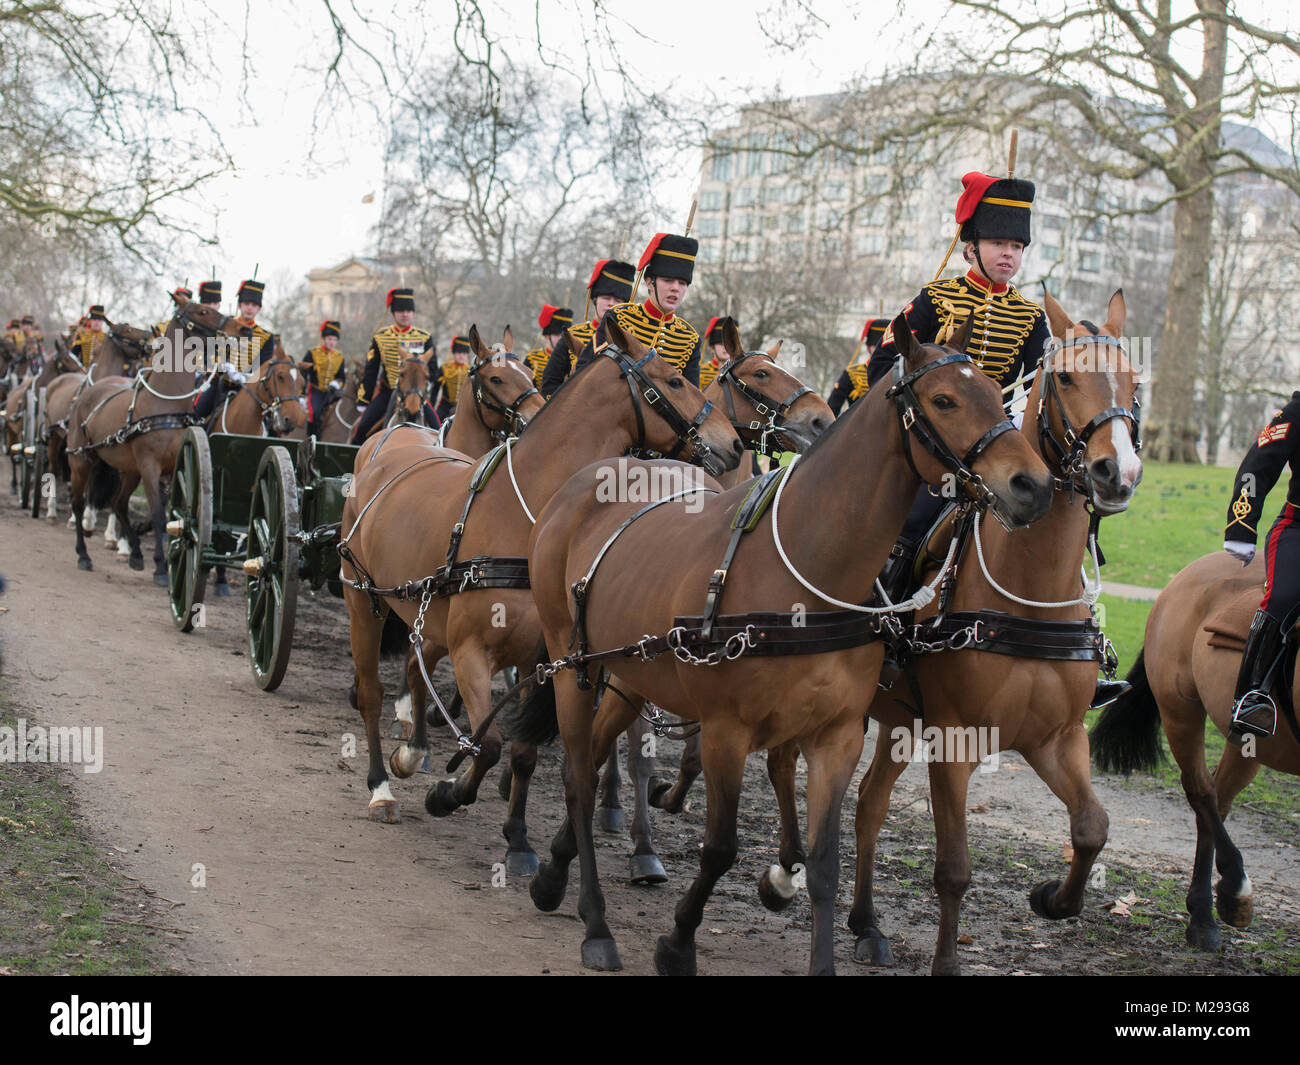 Green Park London, UK. 6 February 2018. The King's Troop Royal Horse Artillery, wearing immaculately presented full - Stock Image